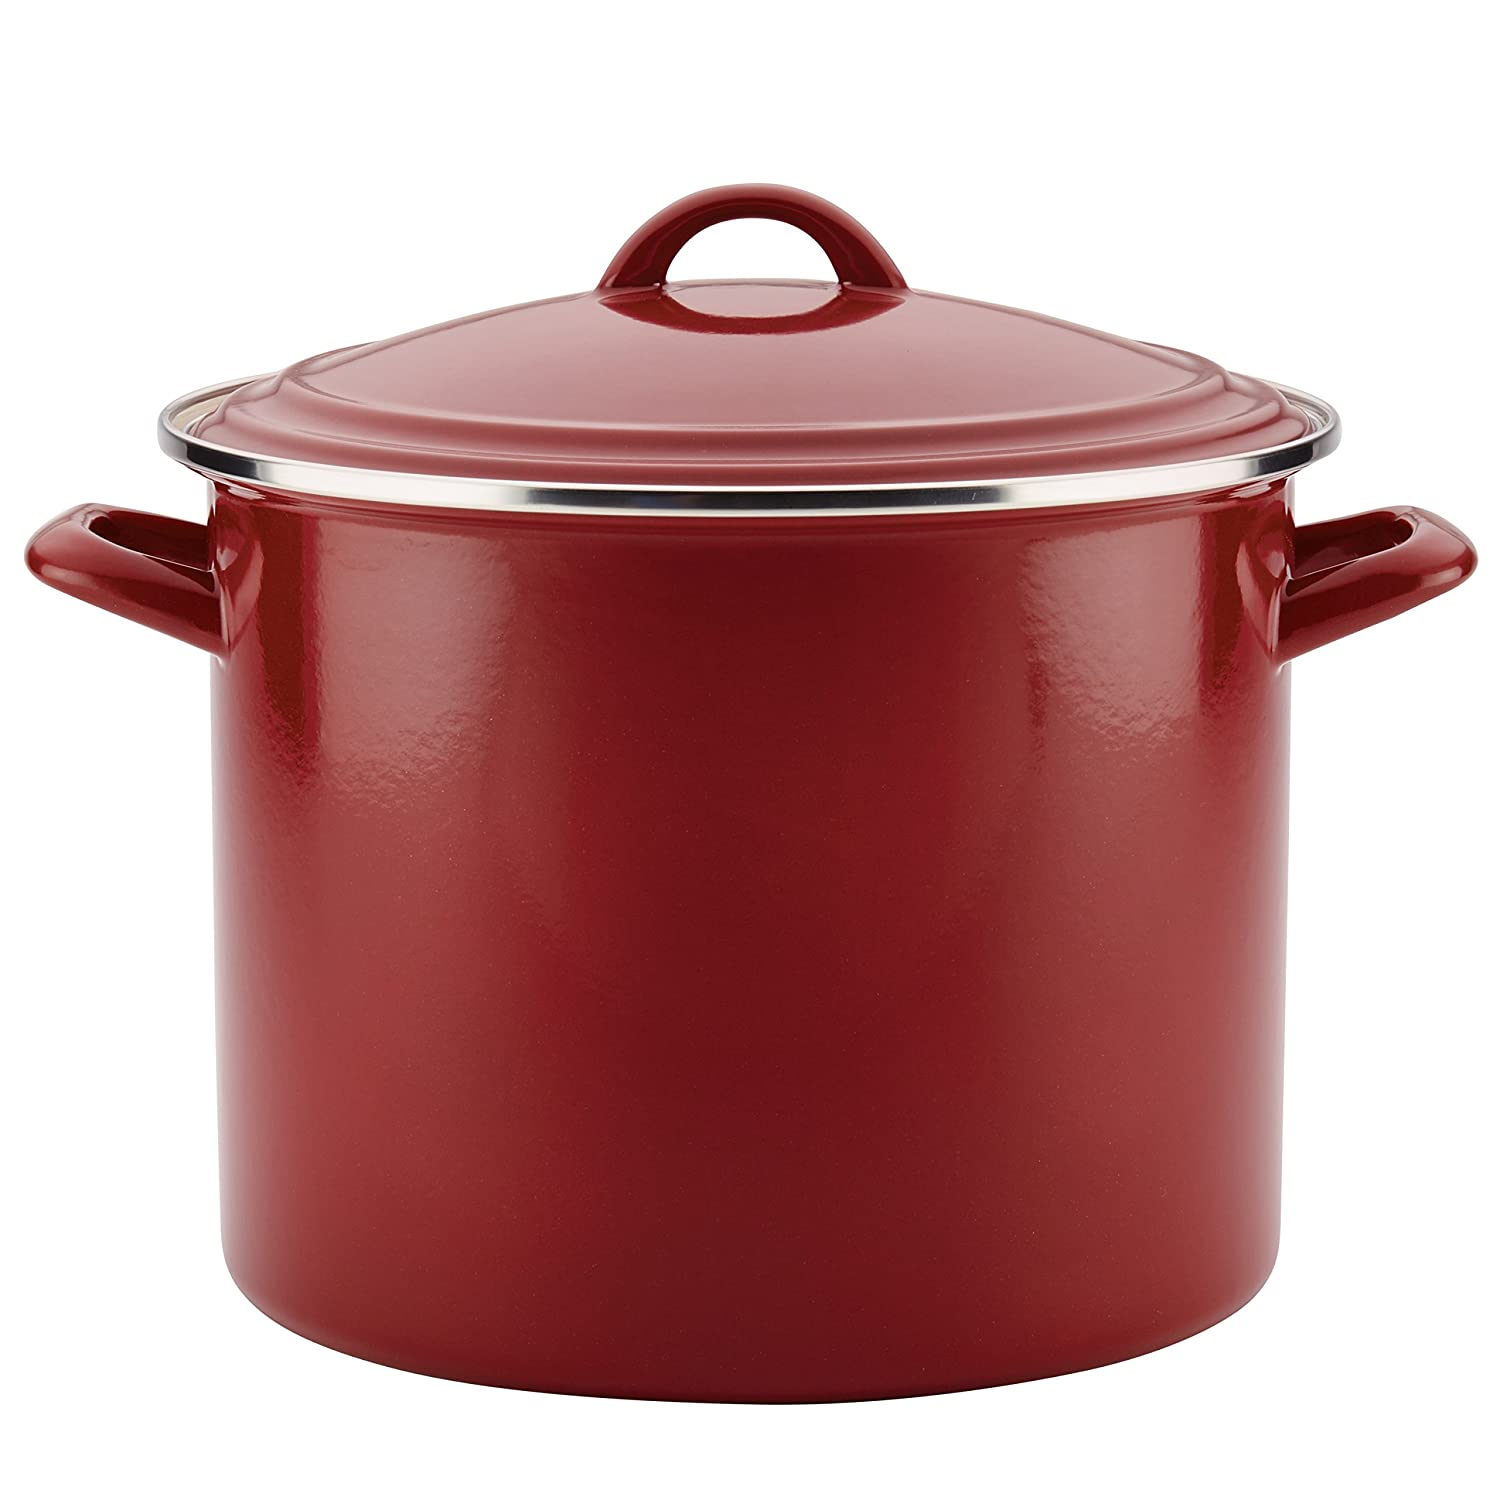 Ayesha Curry Enamel on Steel Stockpot, 12-Quart, Sienna Red 46951